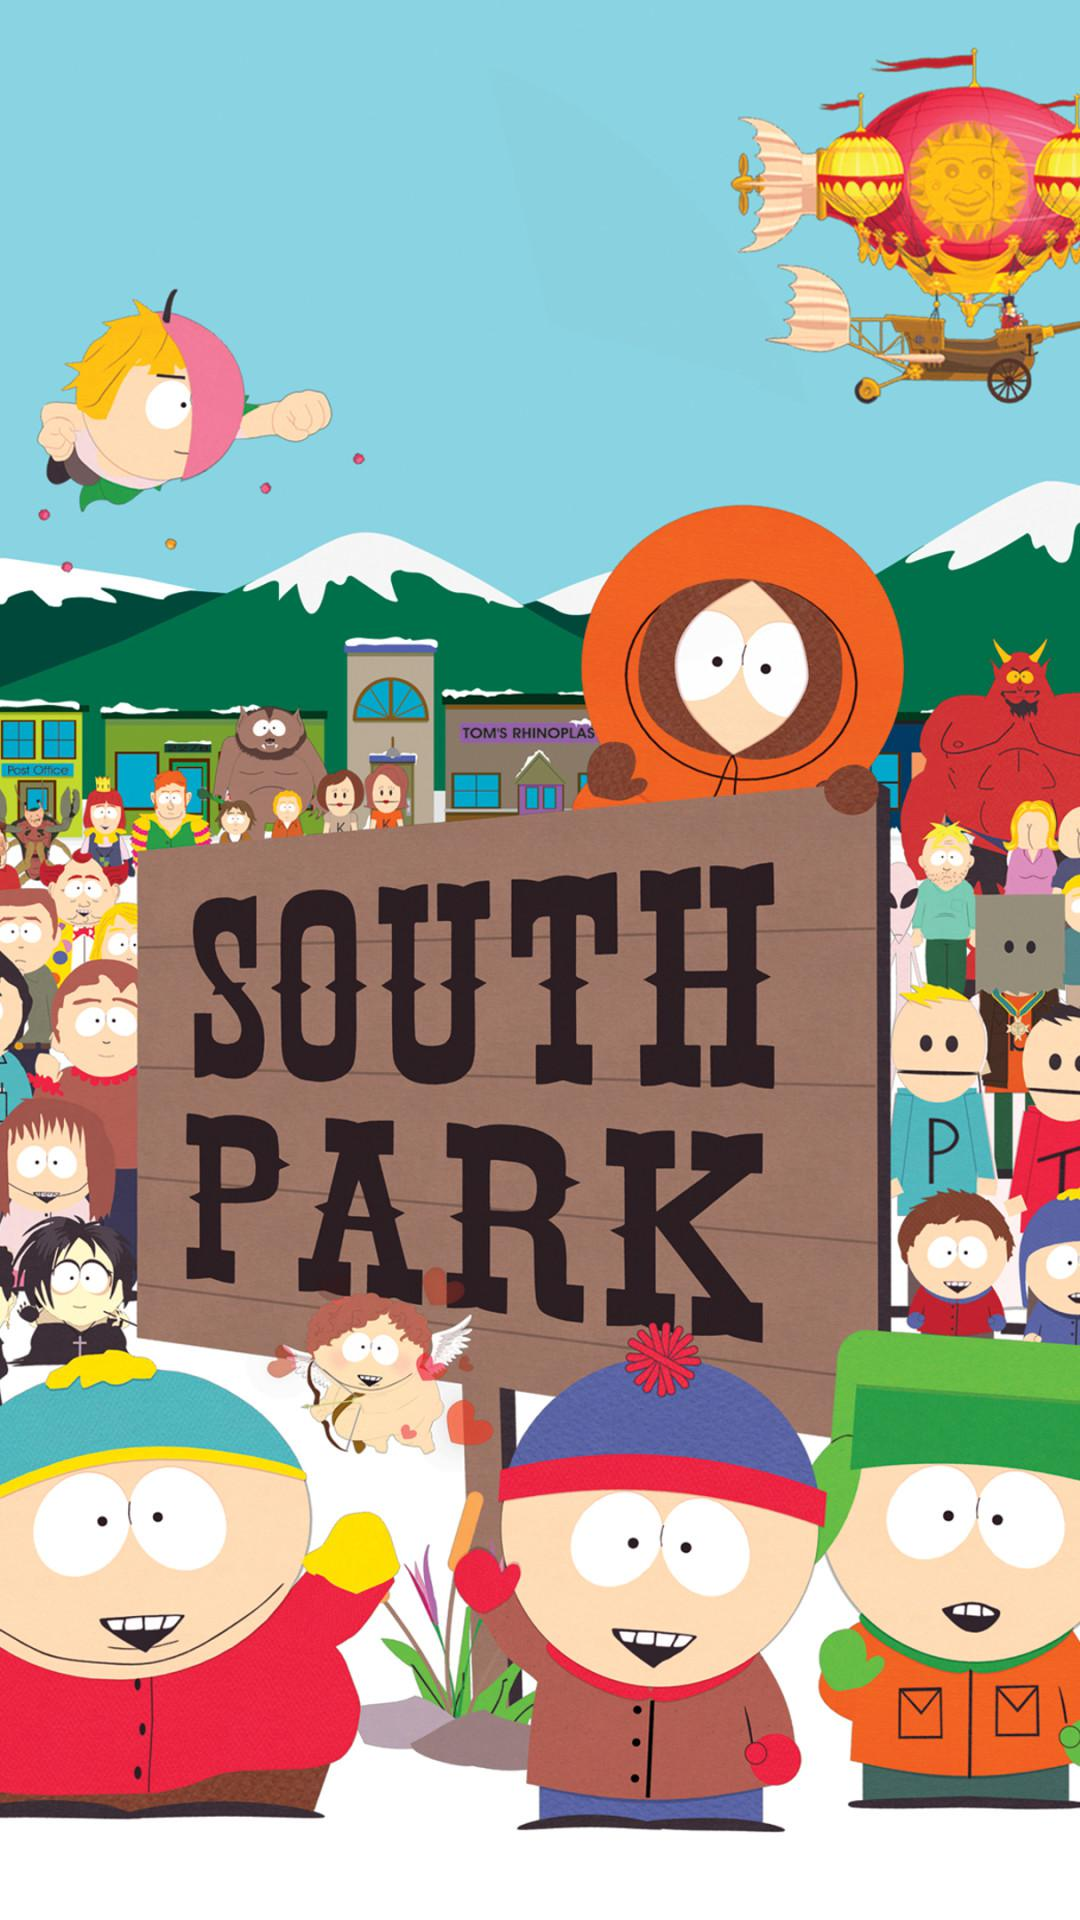 Download South Park iPhone Wallpaper South Park South